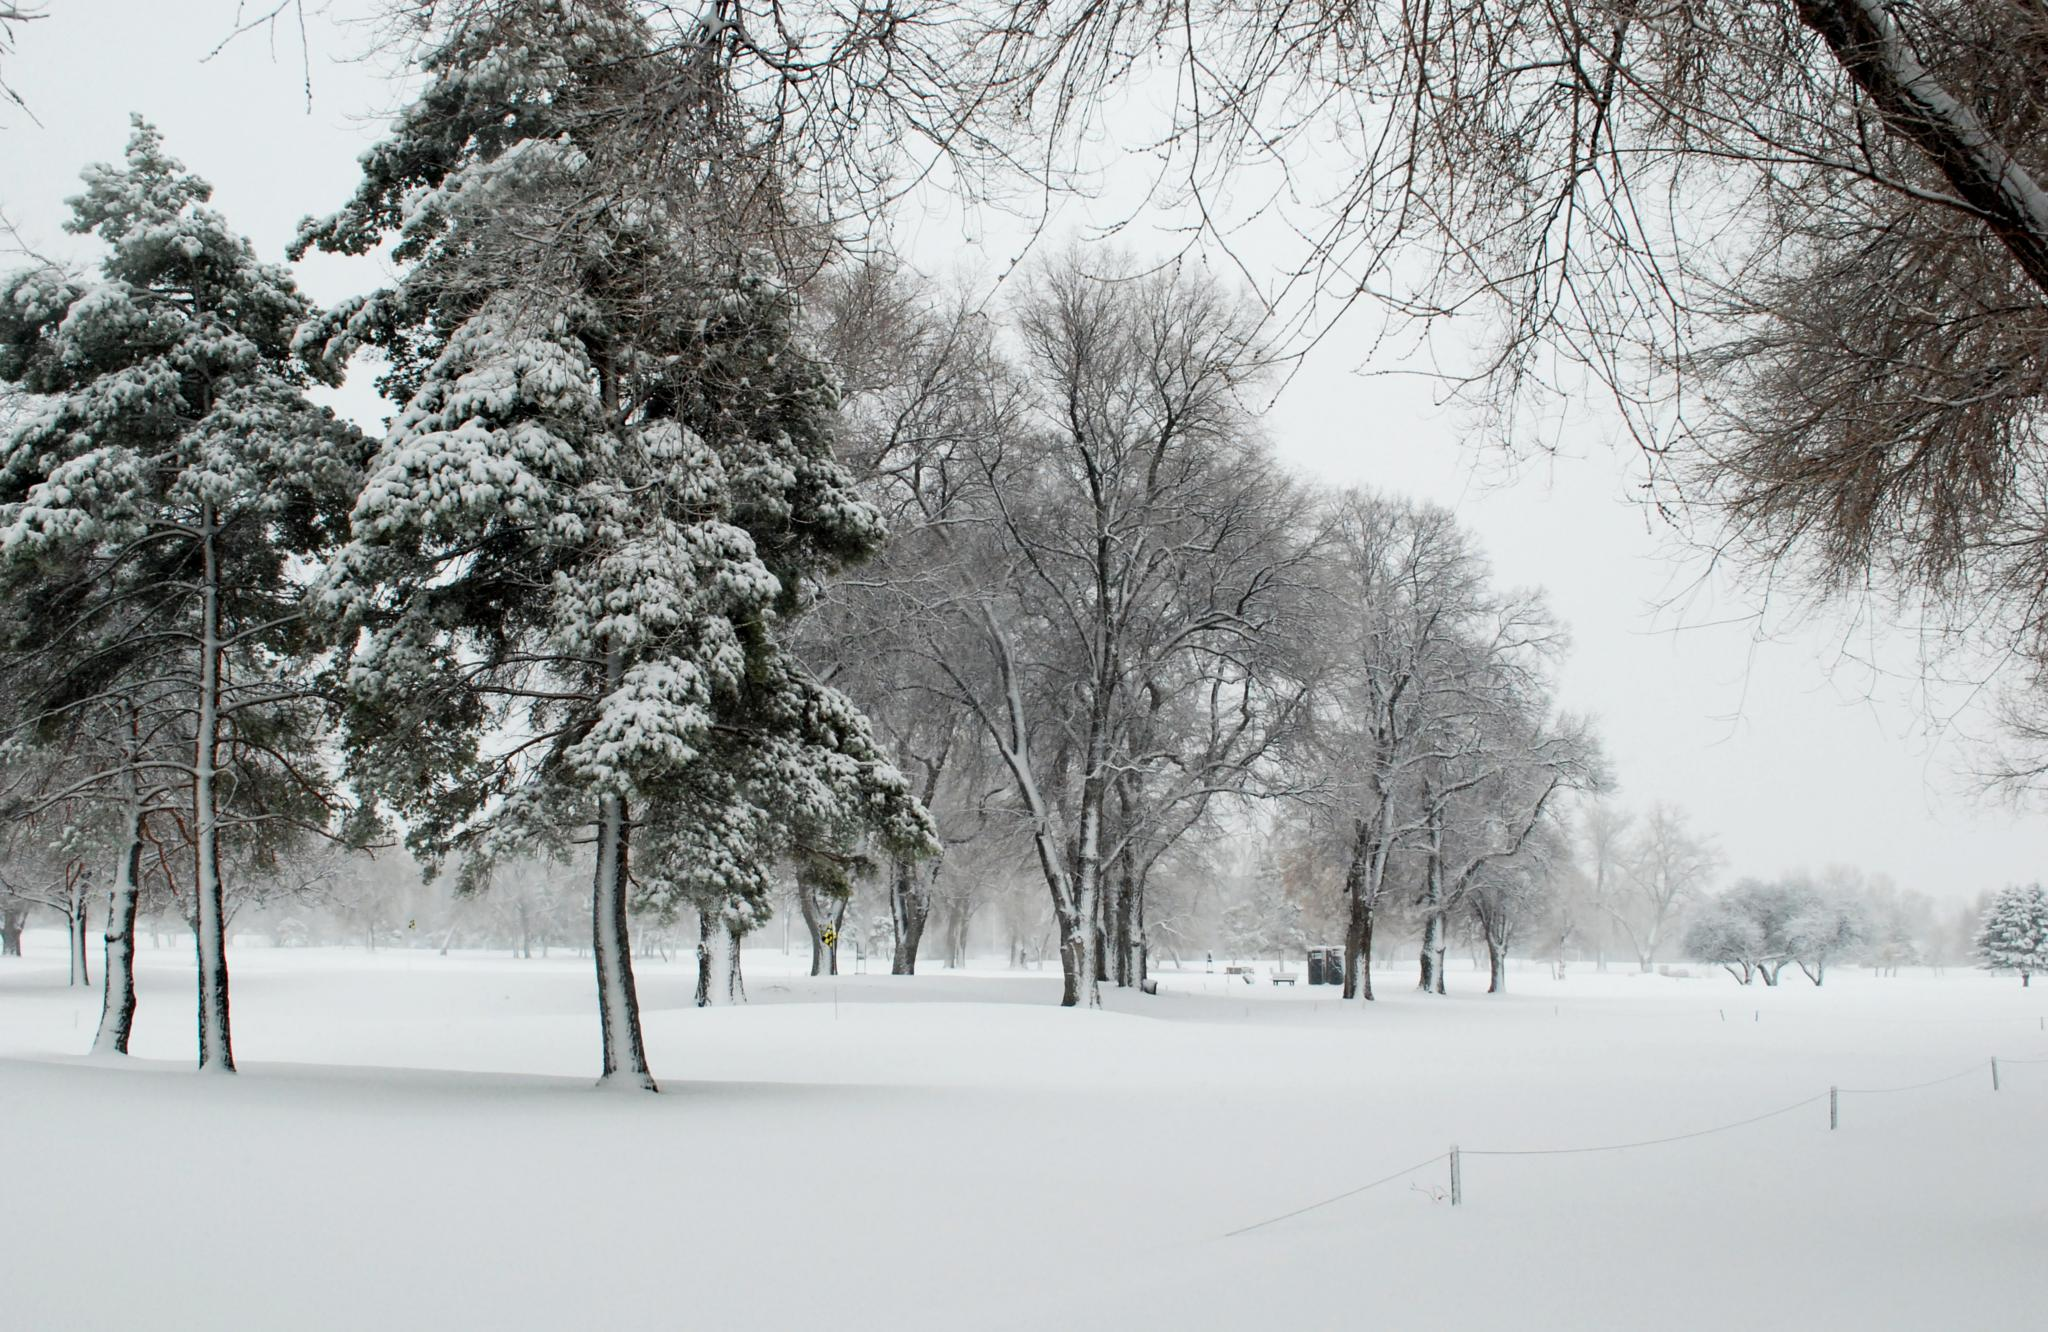 Snow at Nibley Park Golf course by Marco Gutierrez